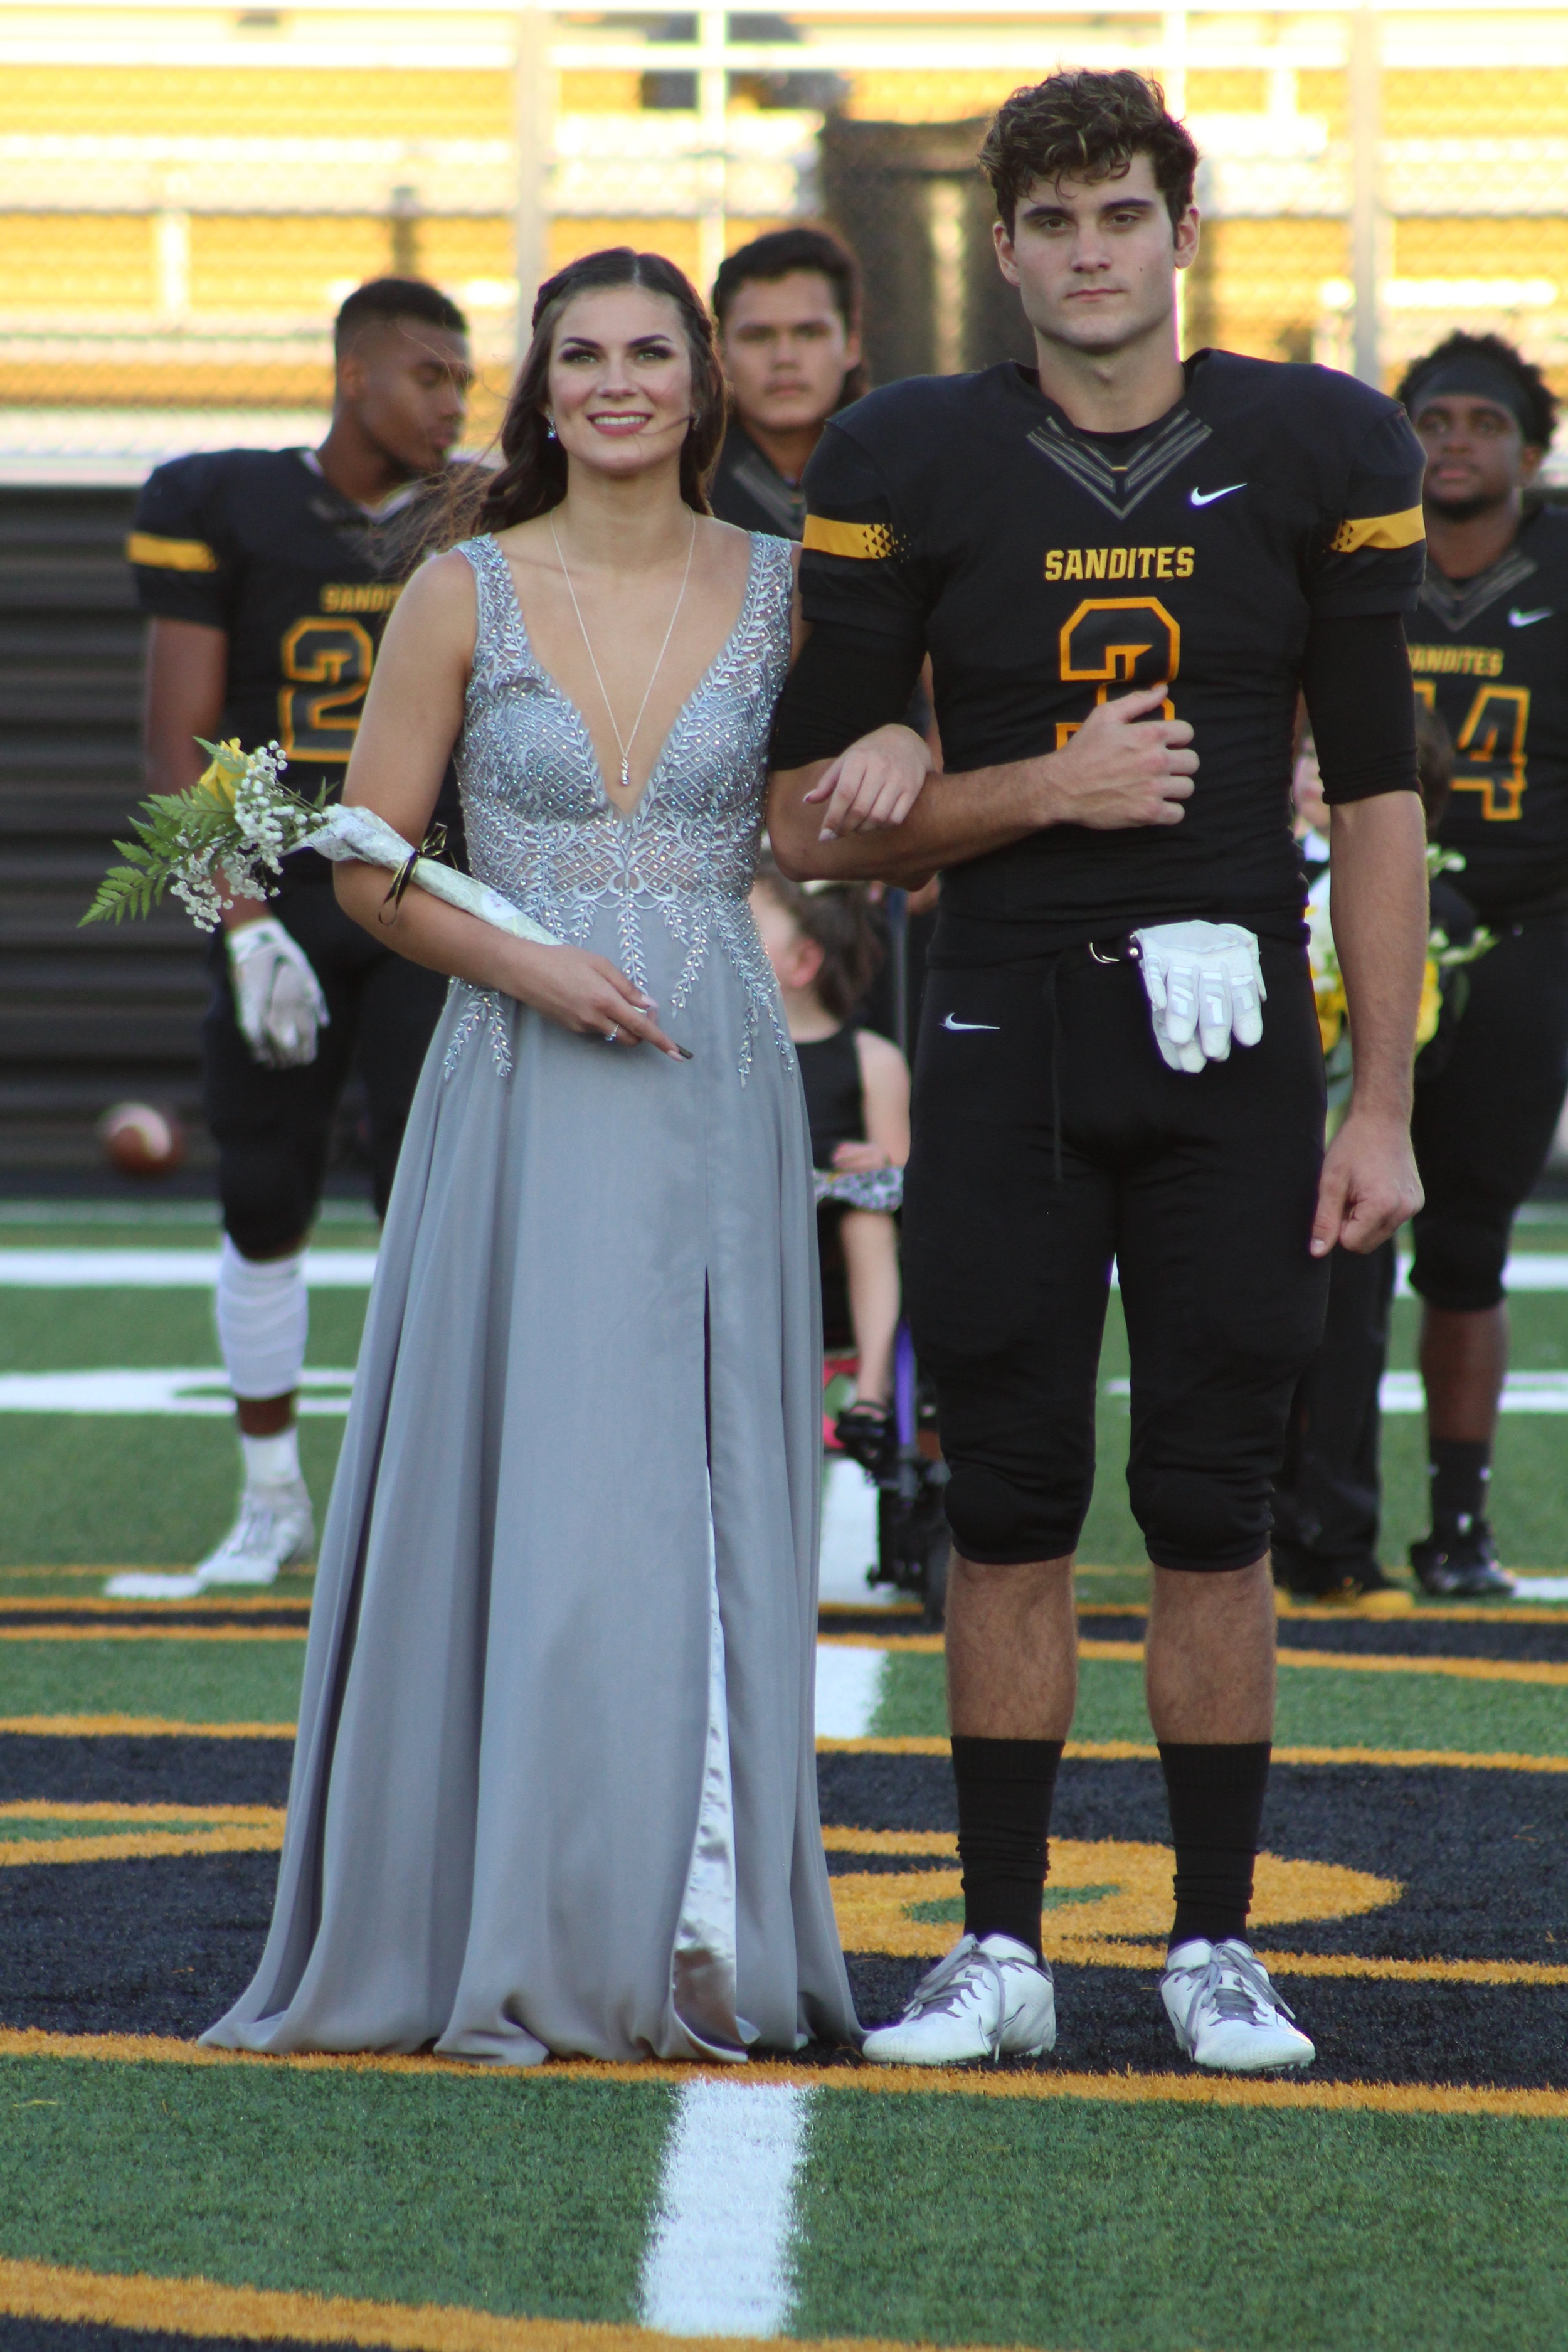 Sloan Goggin, escorted by Jacob Snodgrass. Goggin is the daughter of Pat and Cherry Goggin and is a four-year varsity dancer. Snodgrass is the son of Rodney and Jennifer Snodgrass. He is a three-year varsity wide receiver.